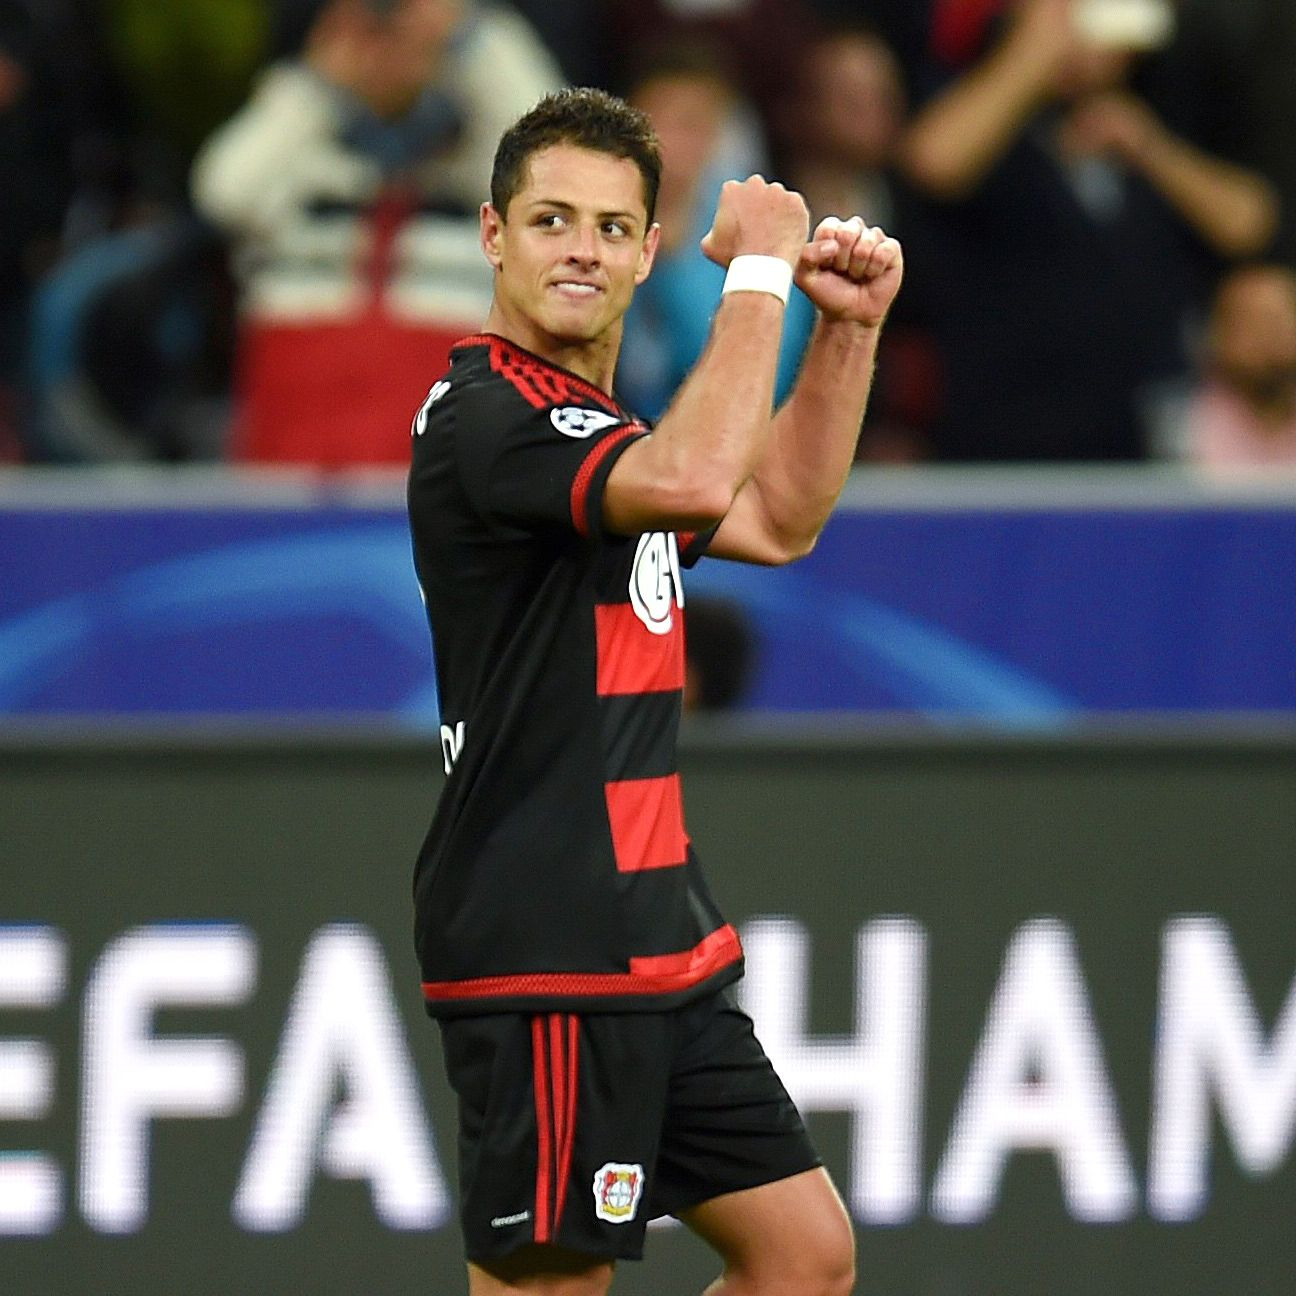 Chicharito Hernandez has found his goalscoring touch in Germany.